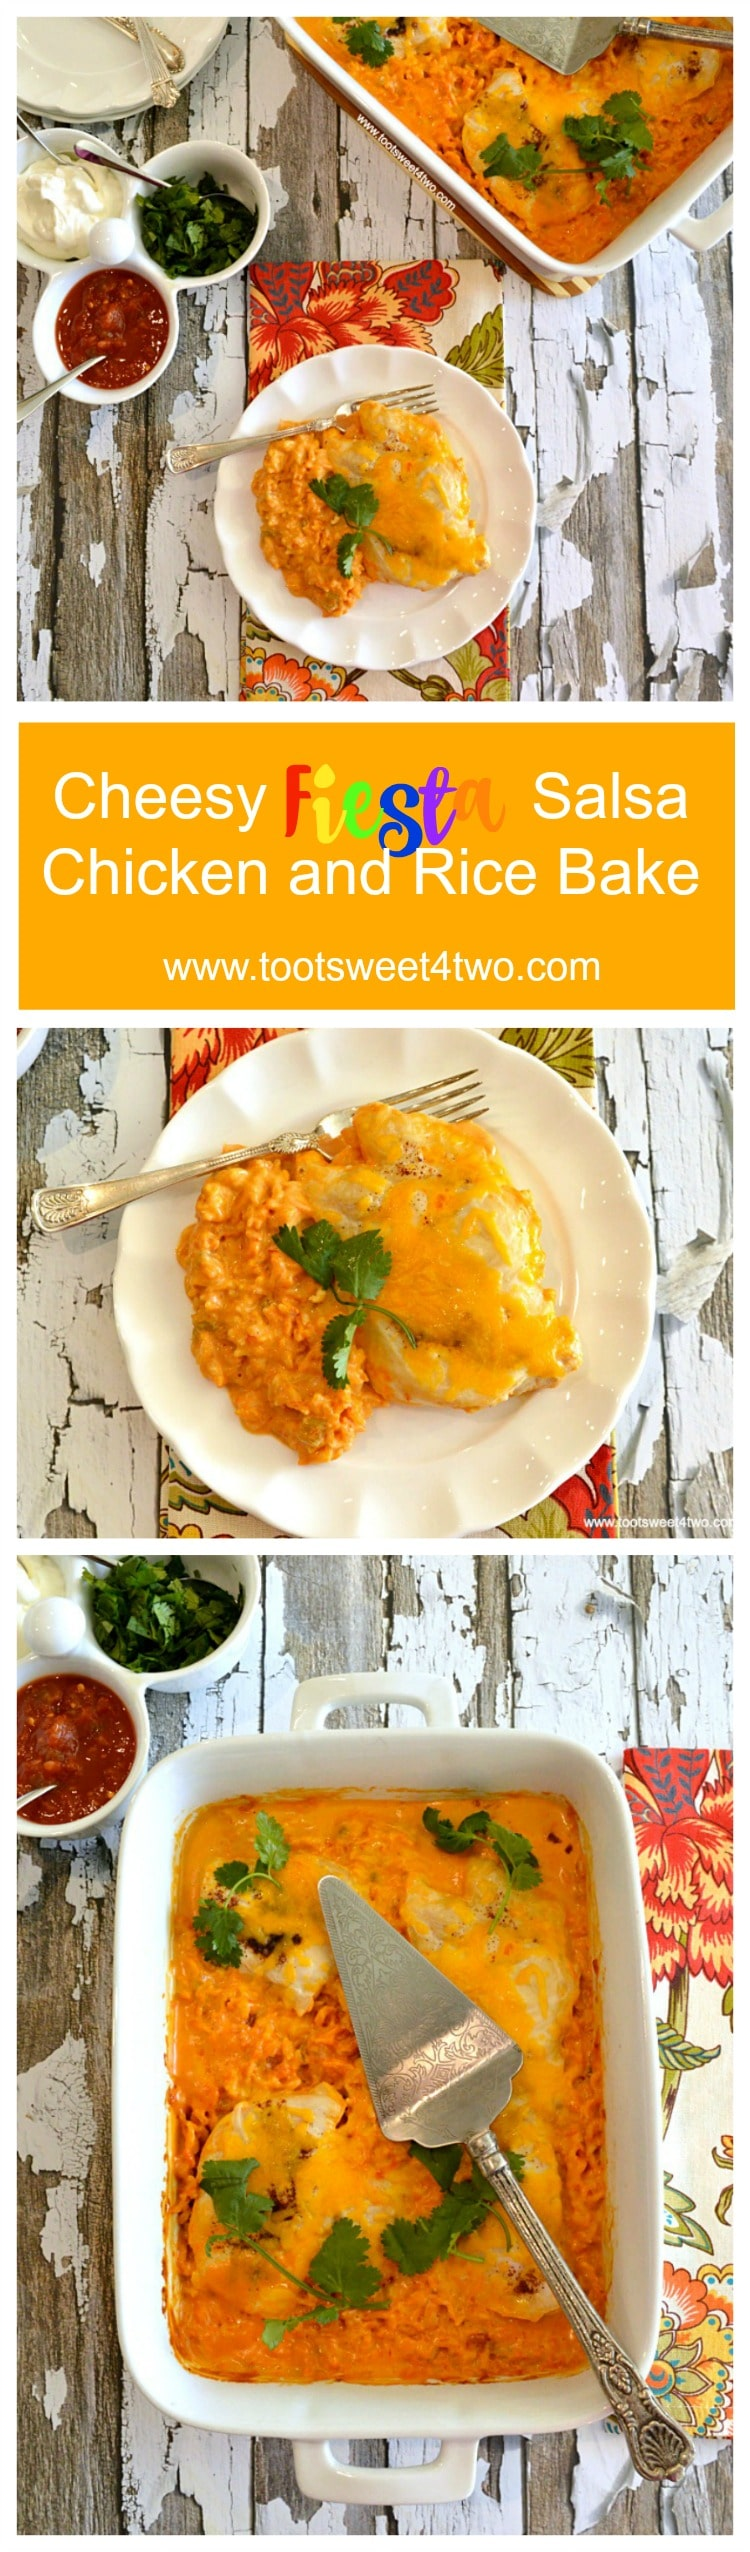 Cheesy Fiesta Salsa Chicken and Rice Bake - Pinterest